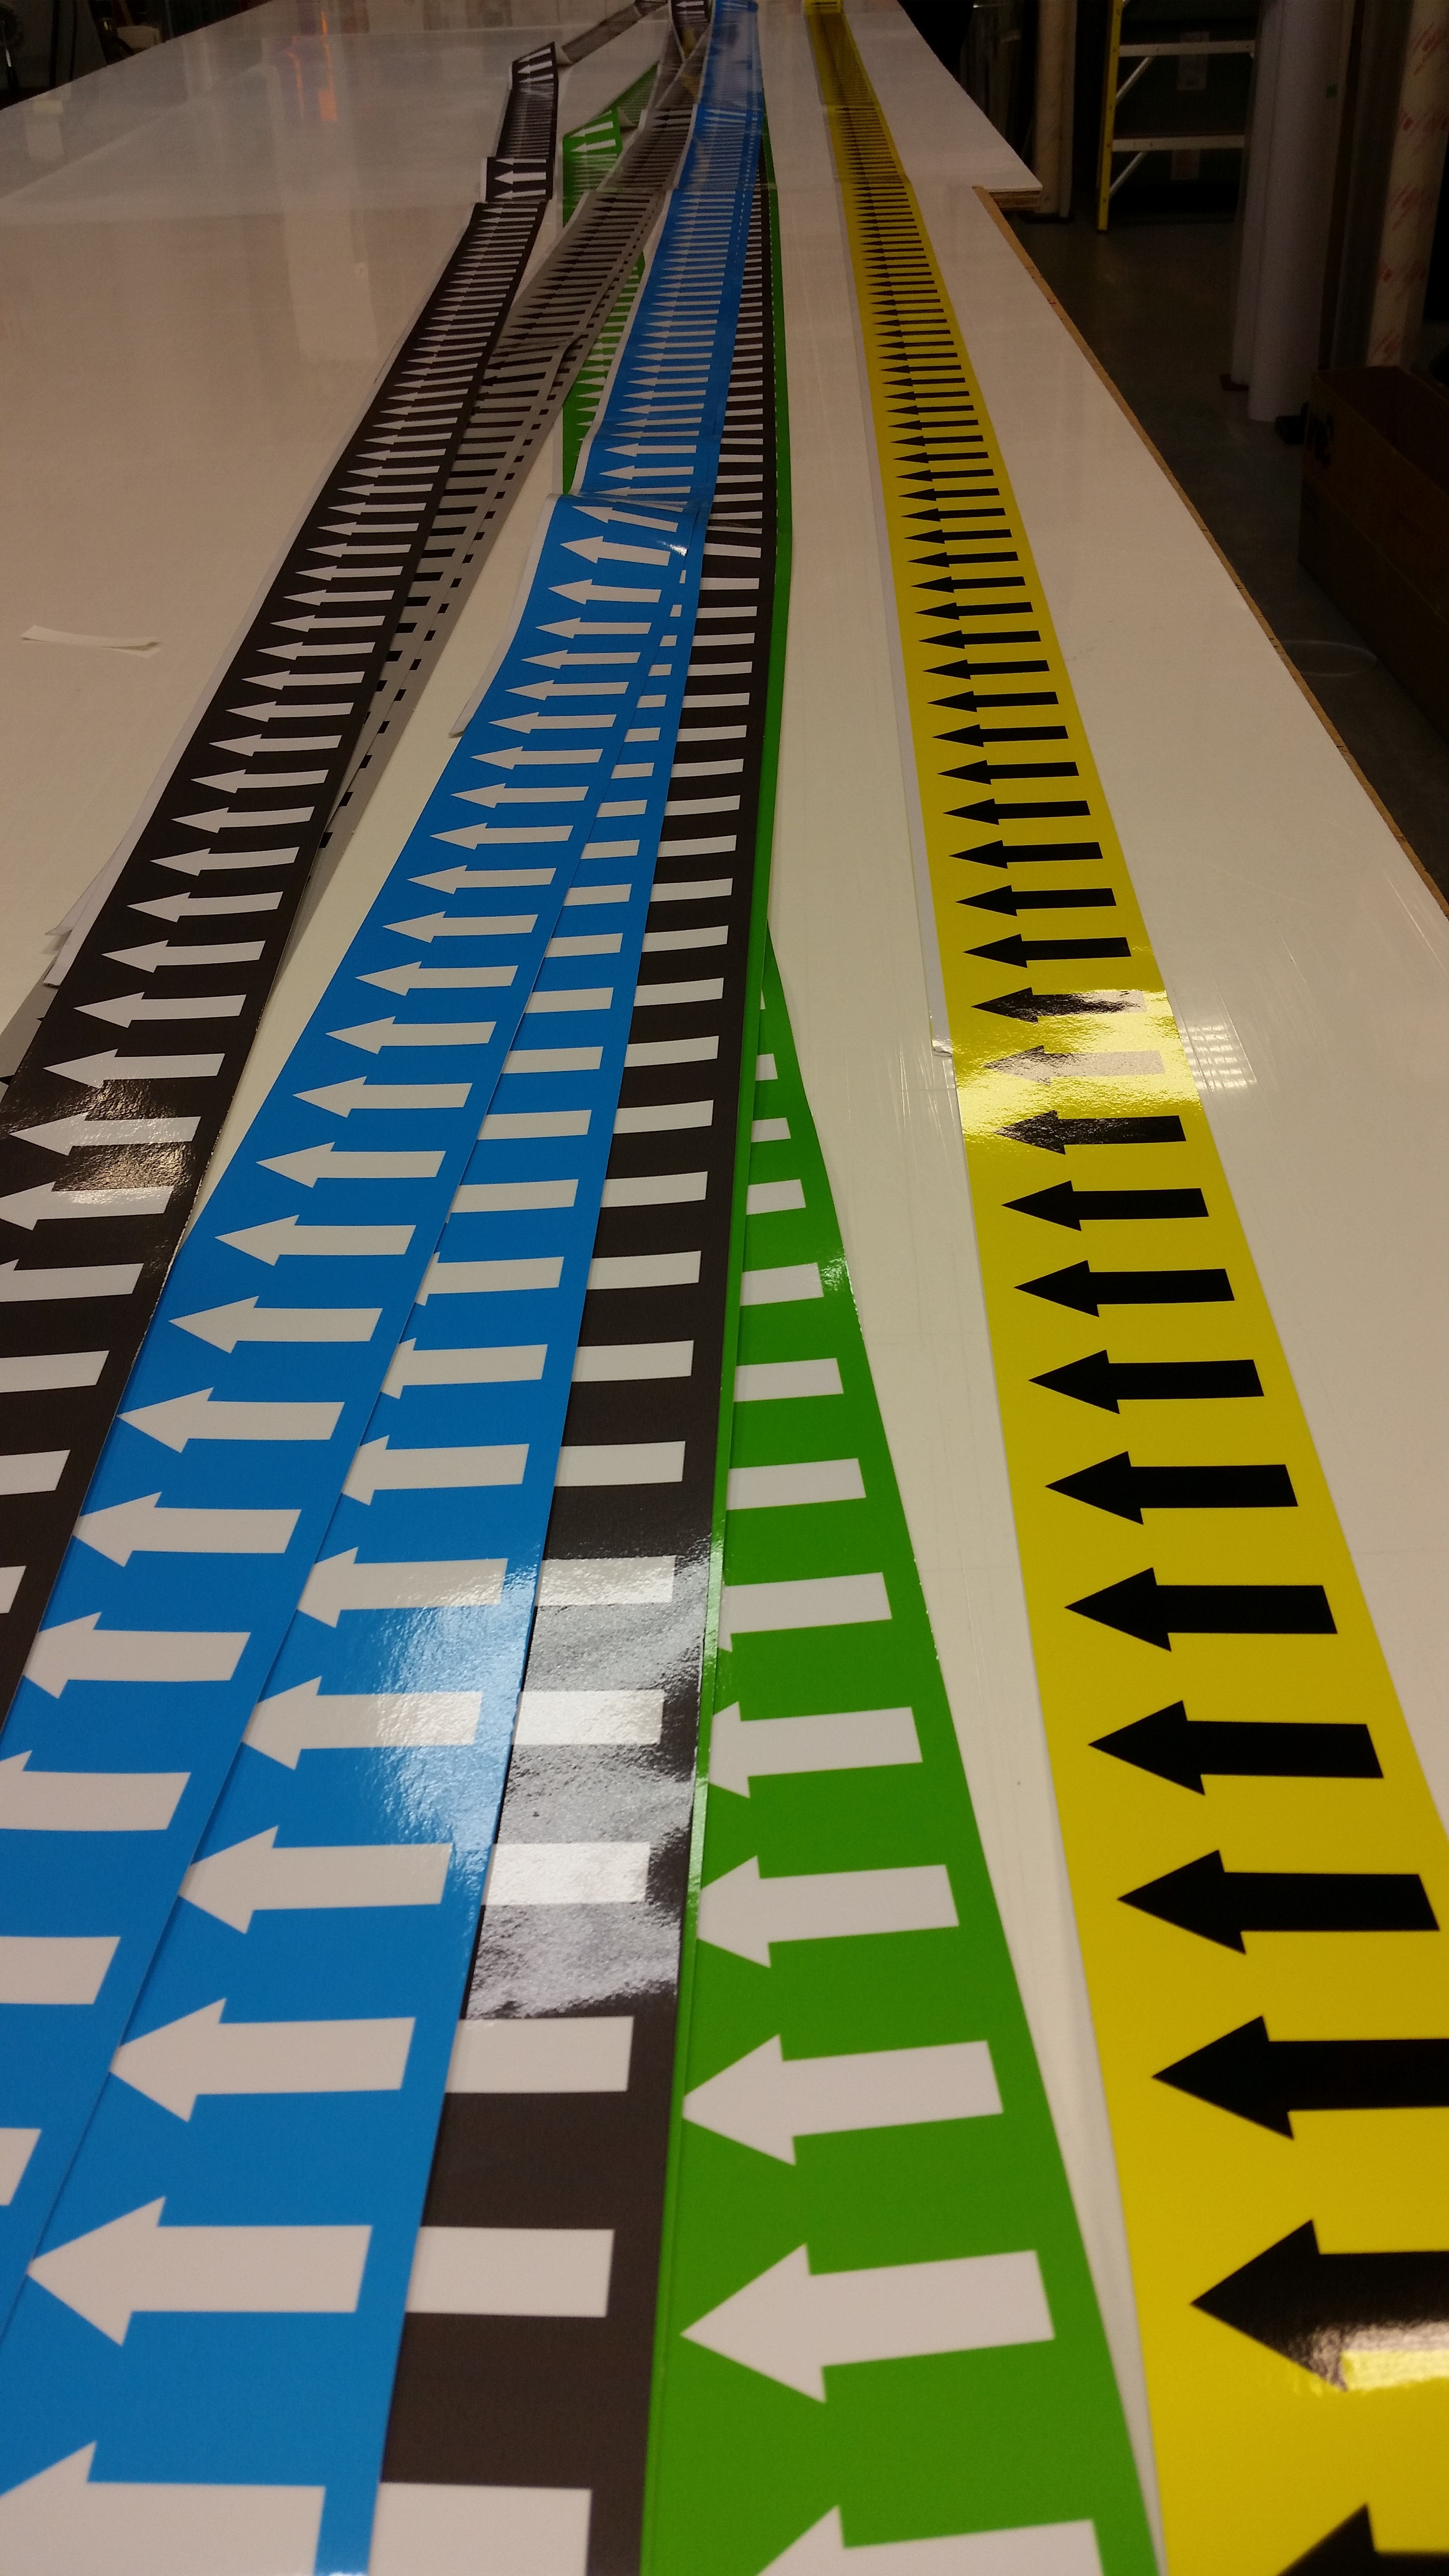 Pipe marking decals